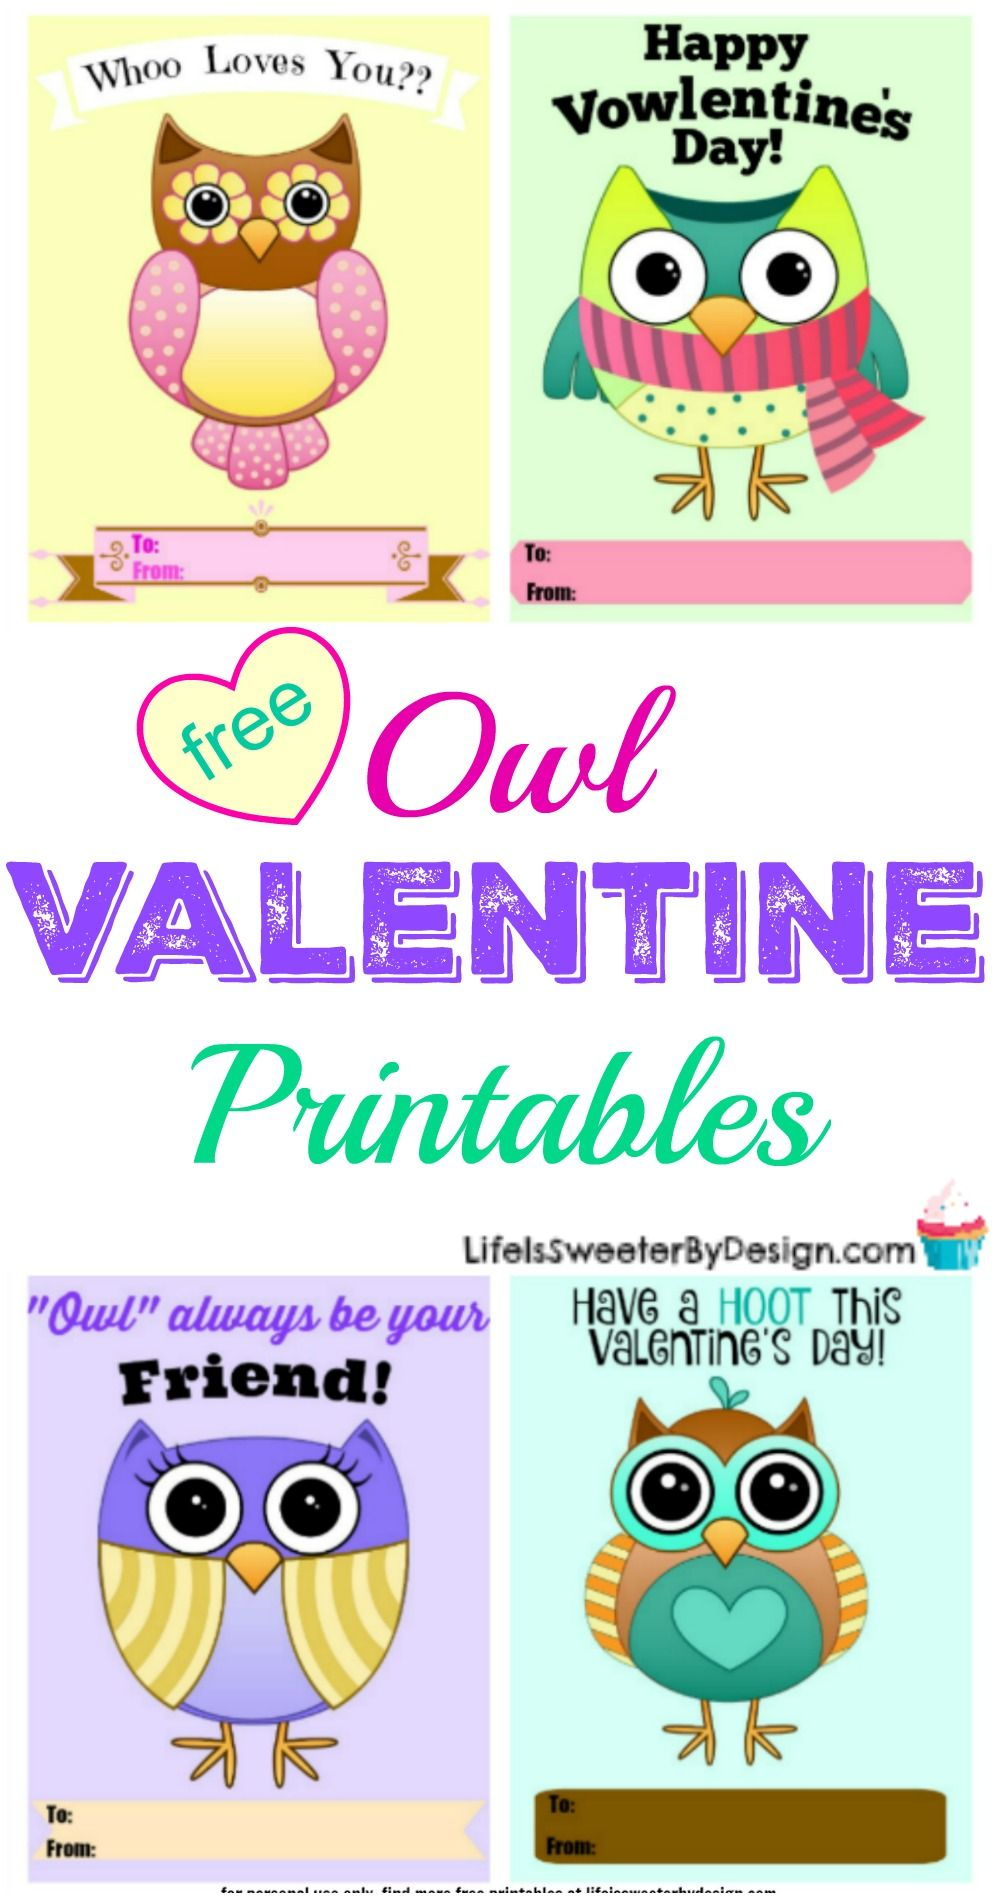 A Free Printable Valentine That Your Child Will Love Whoo Loves You Freeprintable Valentines Printablevalentines Owls